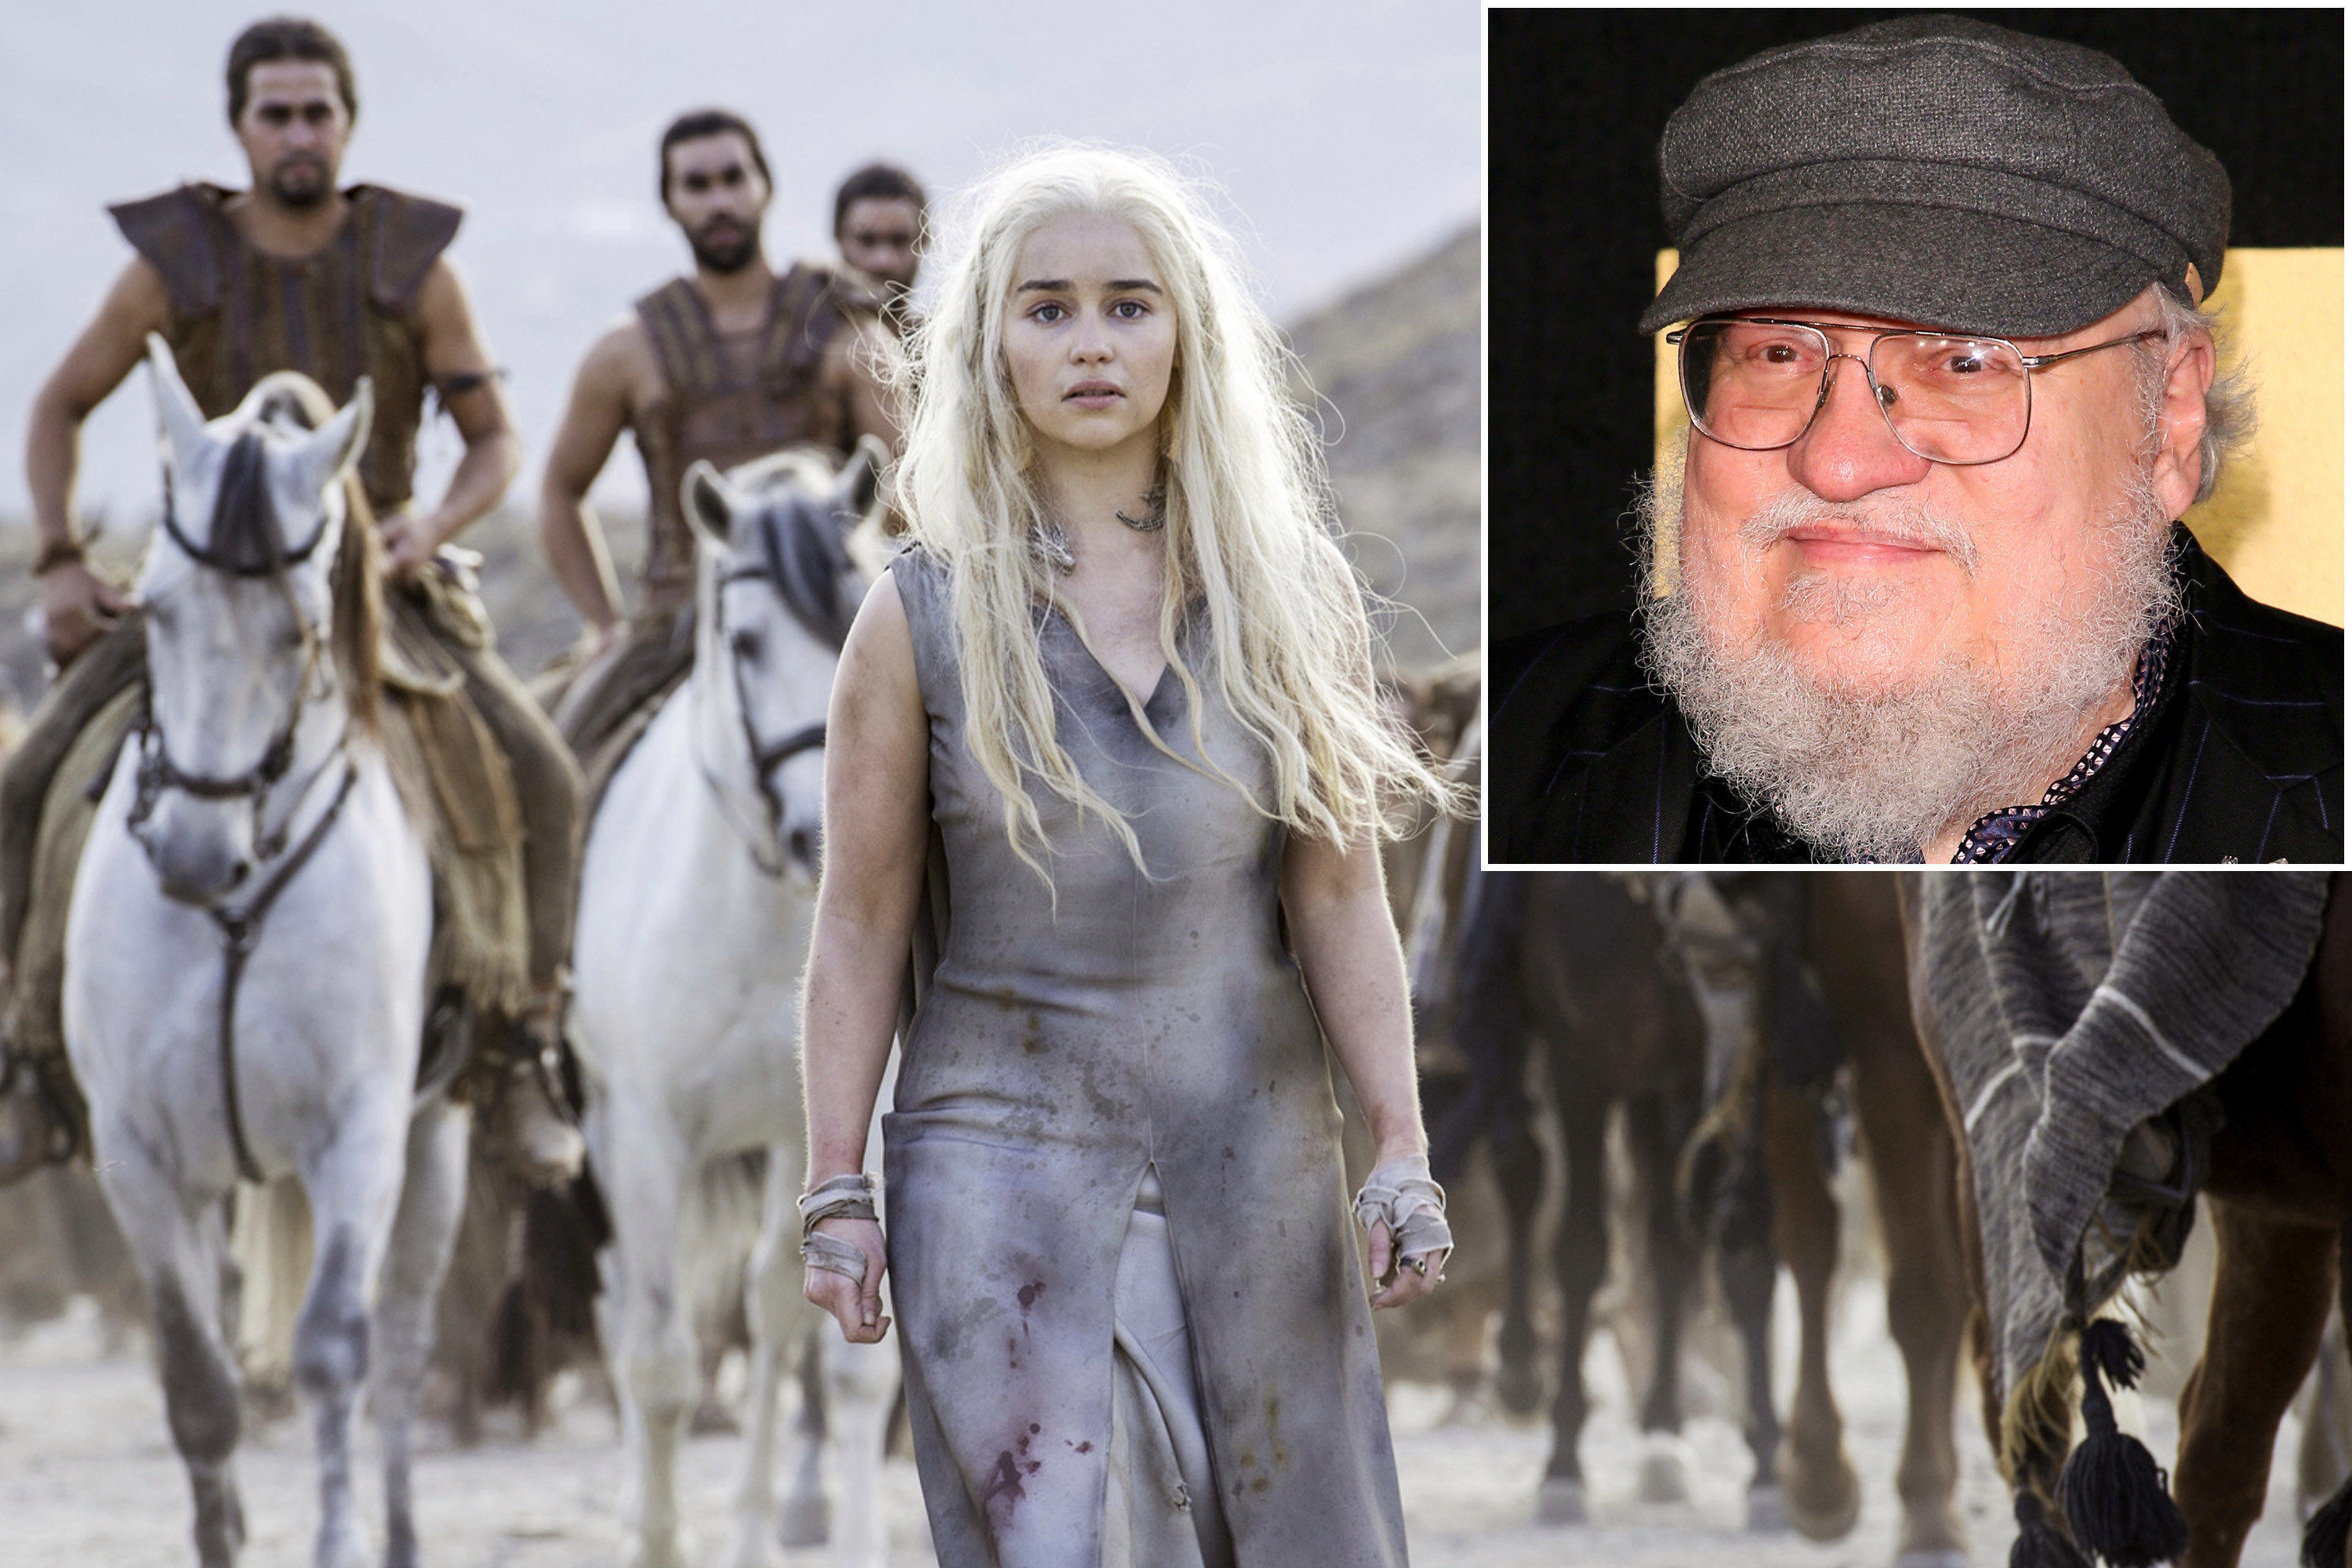 George RR Martin expresses opinion on the final season of Game of Thrones